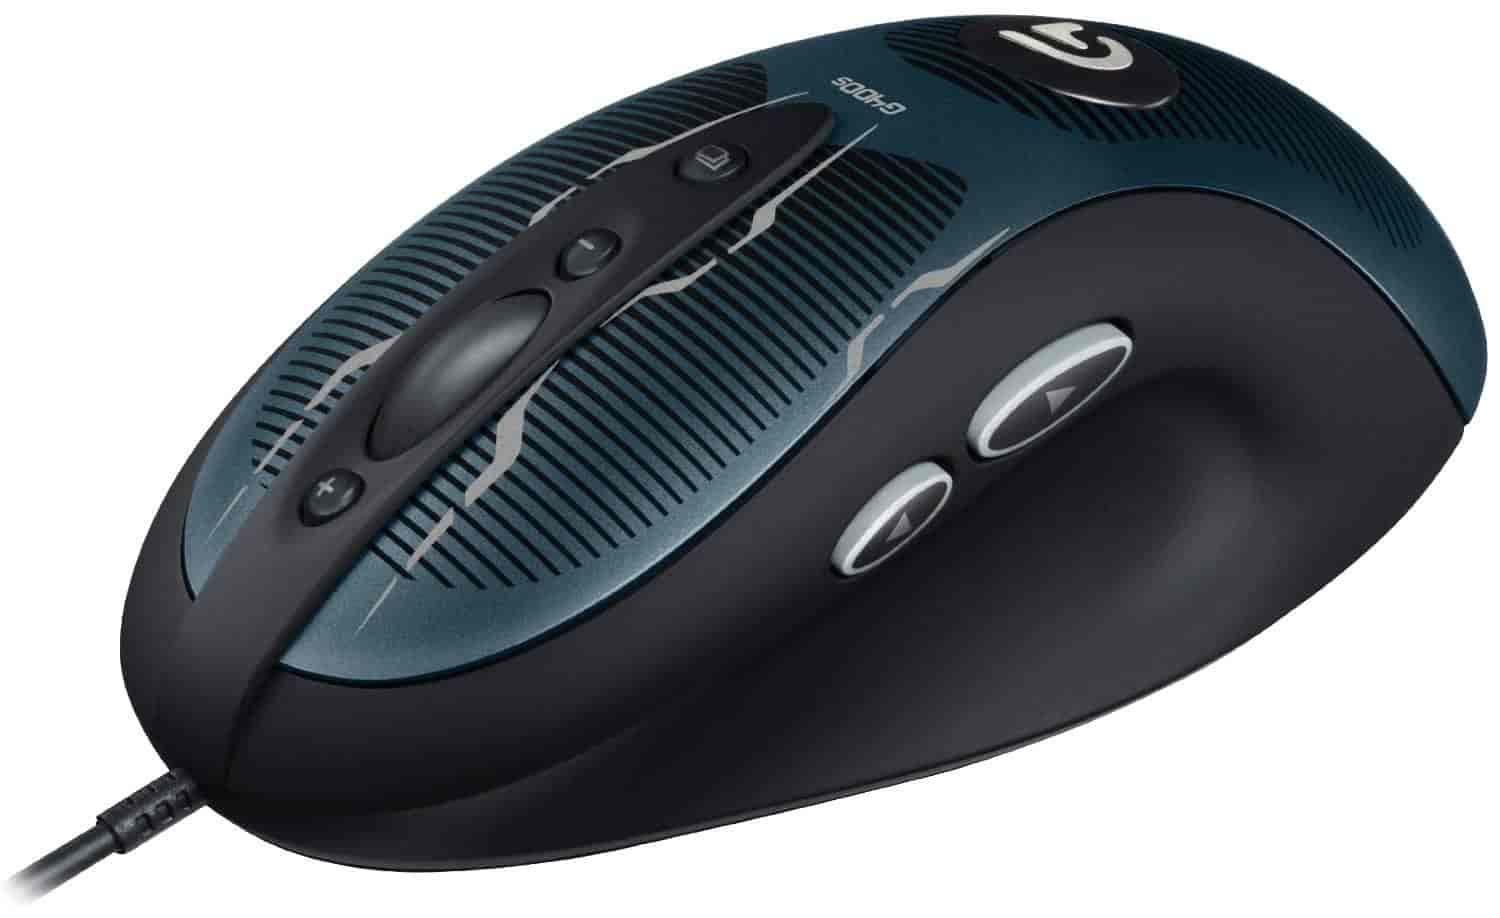 Buy Logitech G400s Optical Gaming Mouse Features Price Reviews